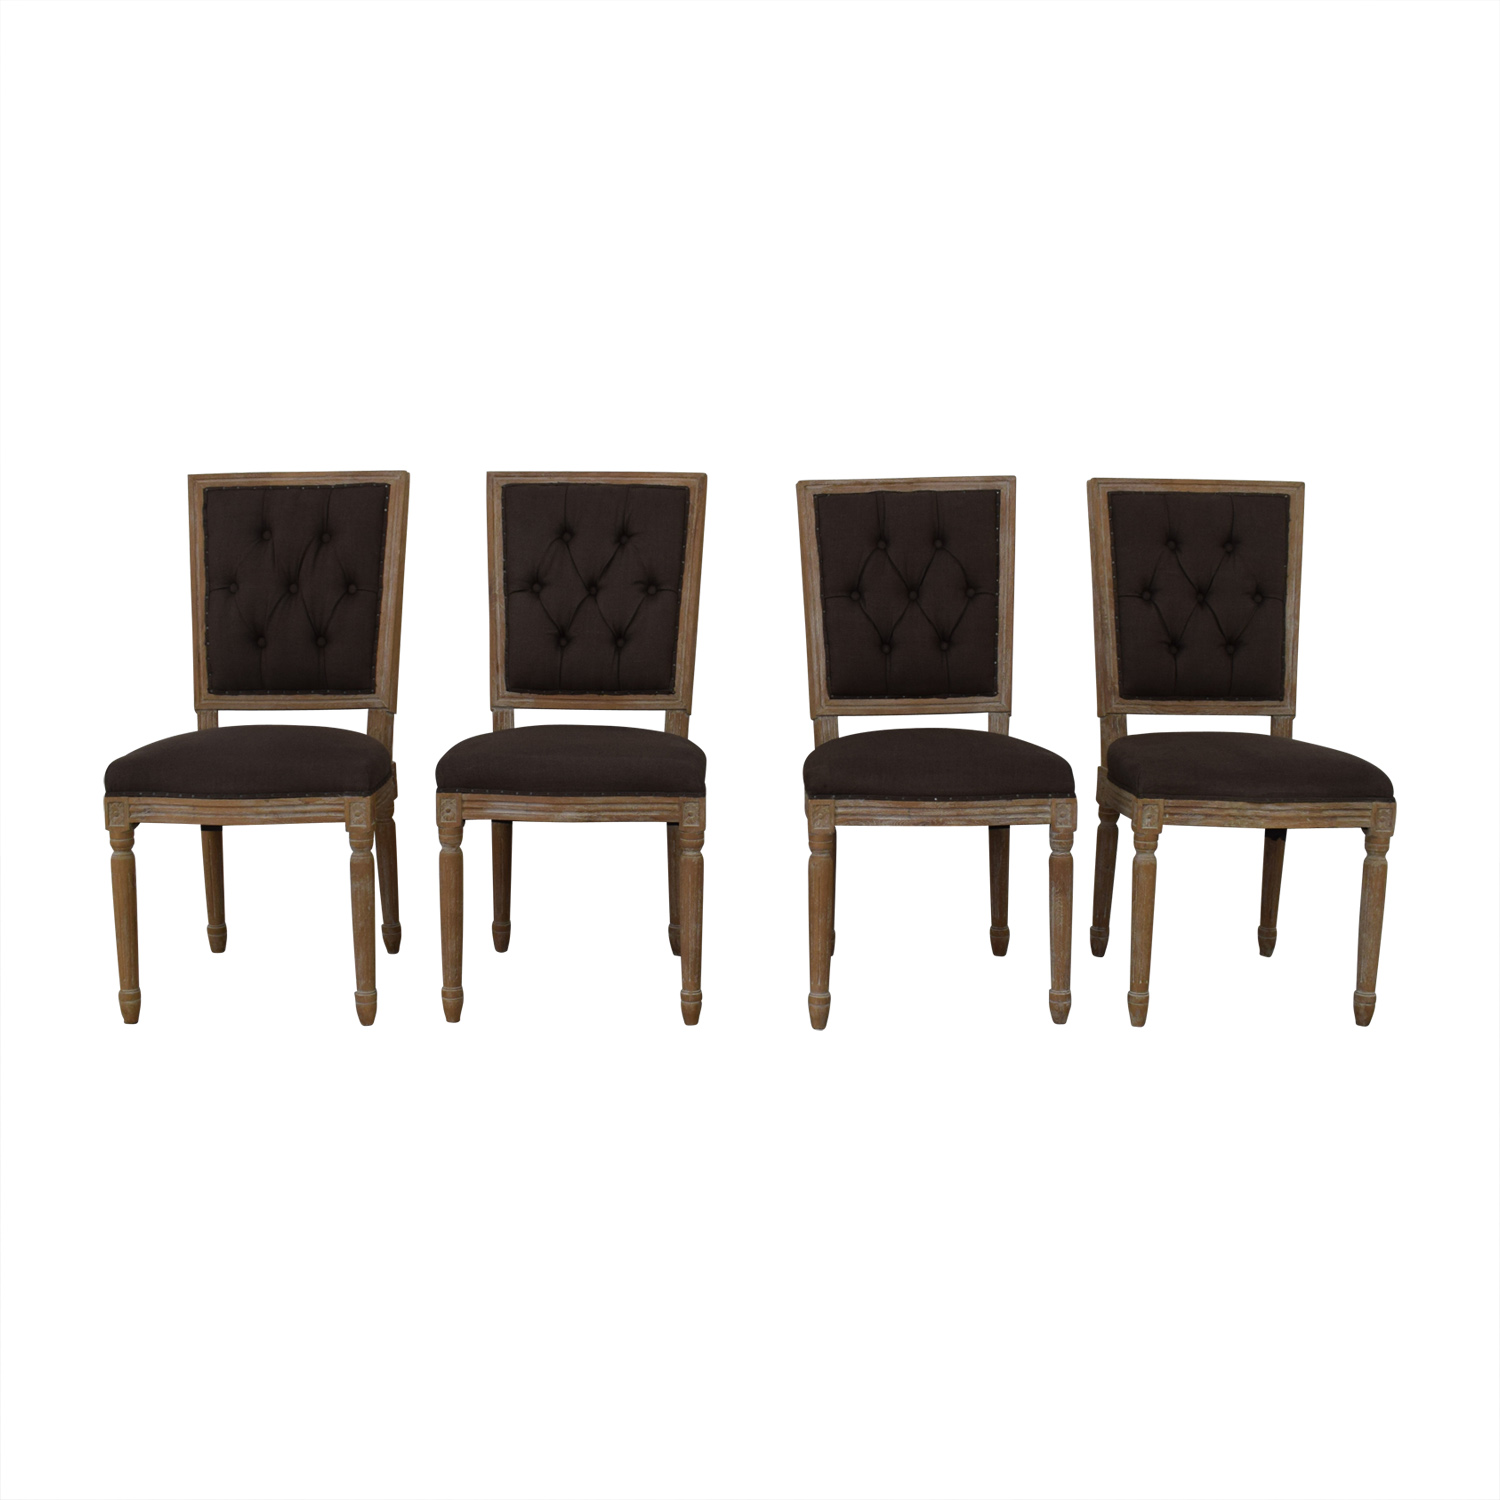 Orient Express Furniture Orient Express Furniture Elton Dining Chairs dimensions